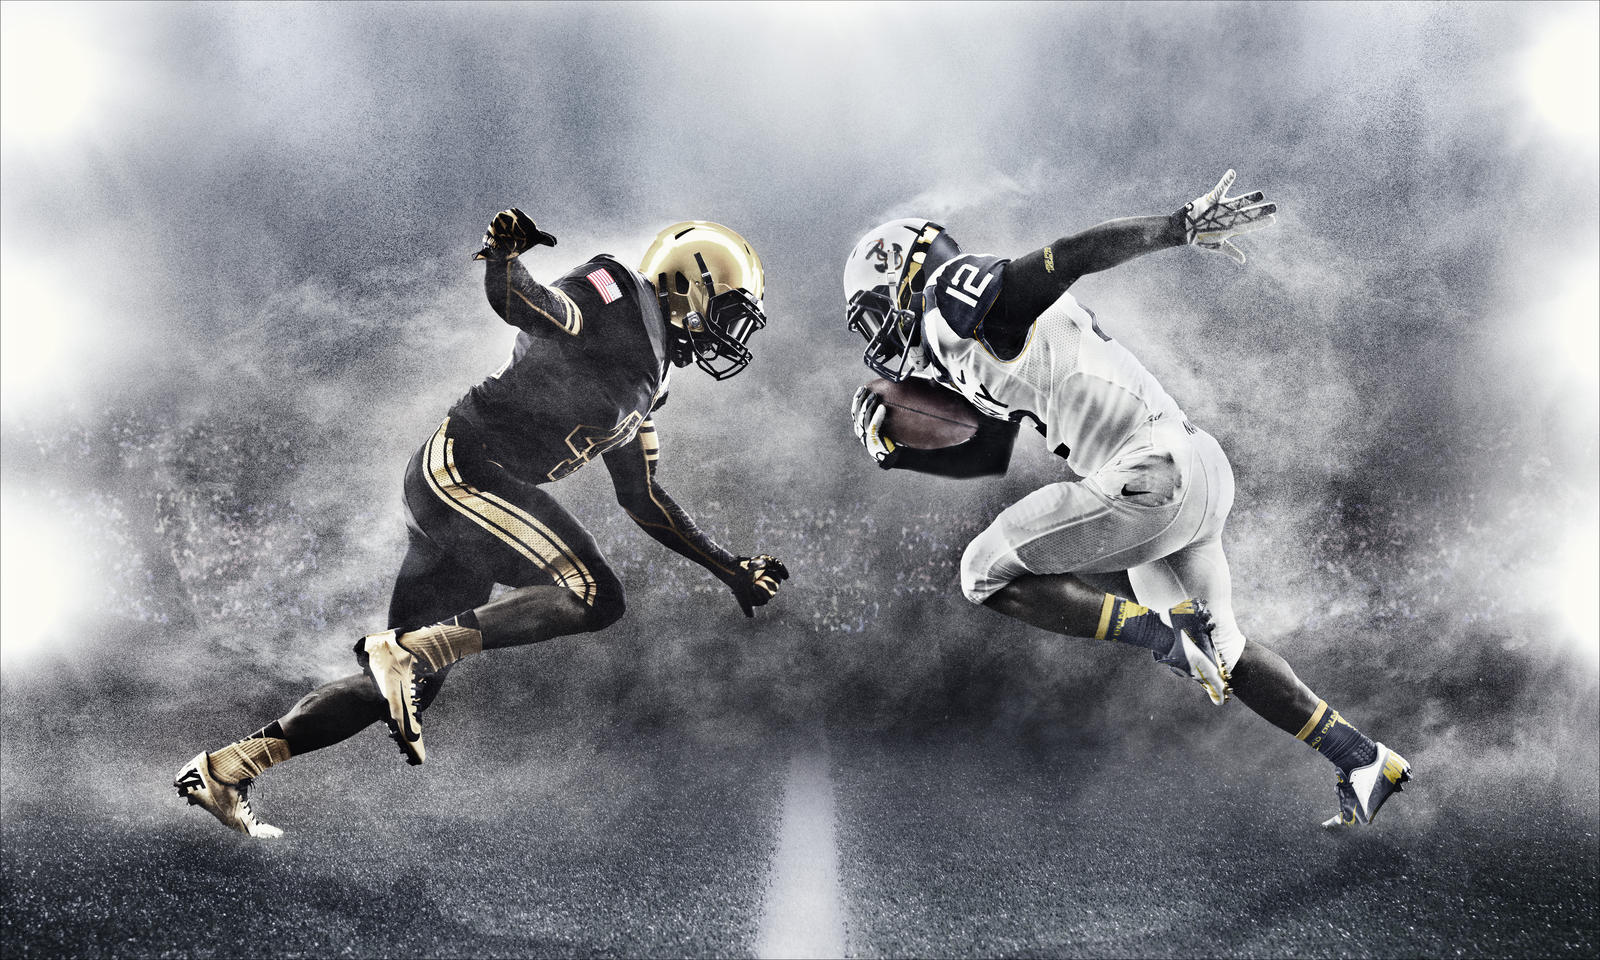 Army and Navy to take the field with new uniform designs this weekend - Nike News